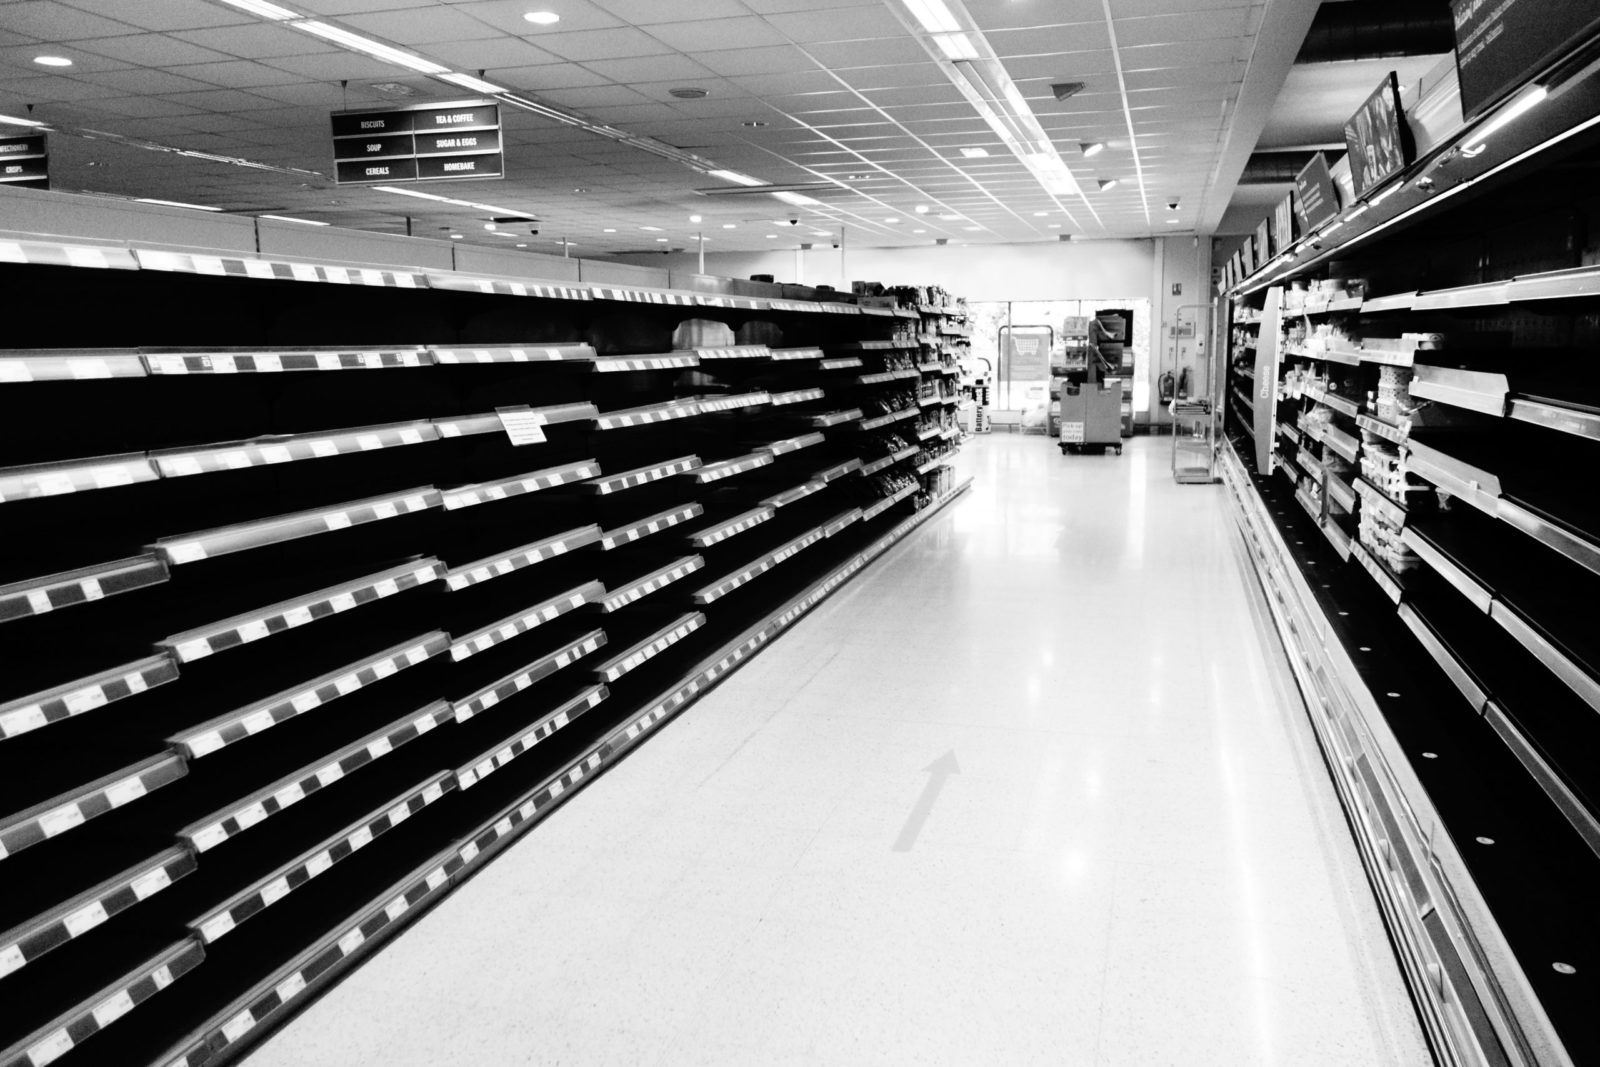 Some empty shelves after a supermarket re-branding